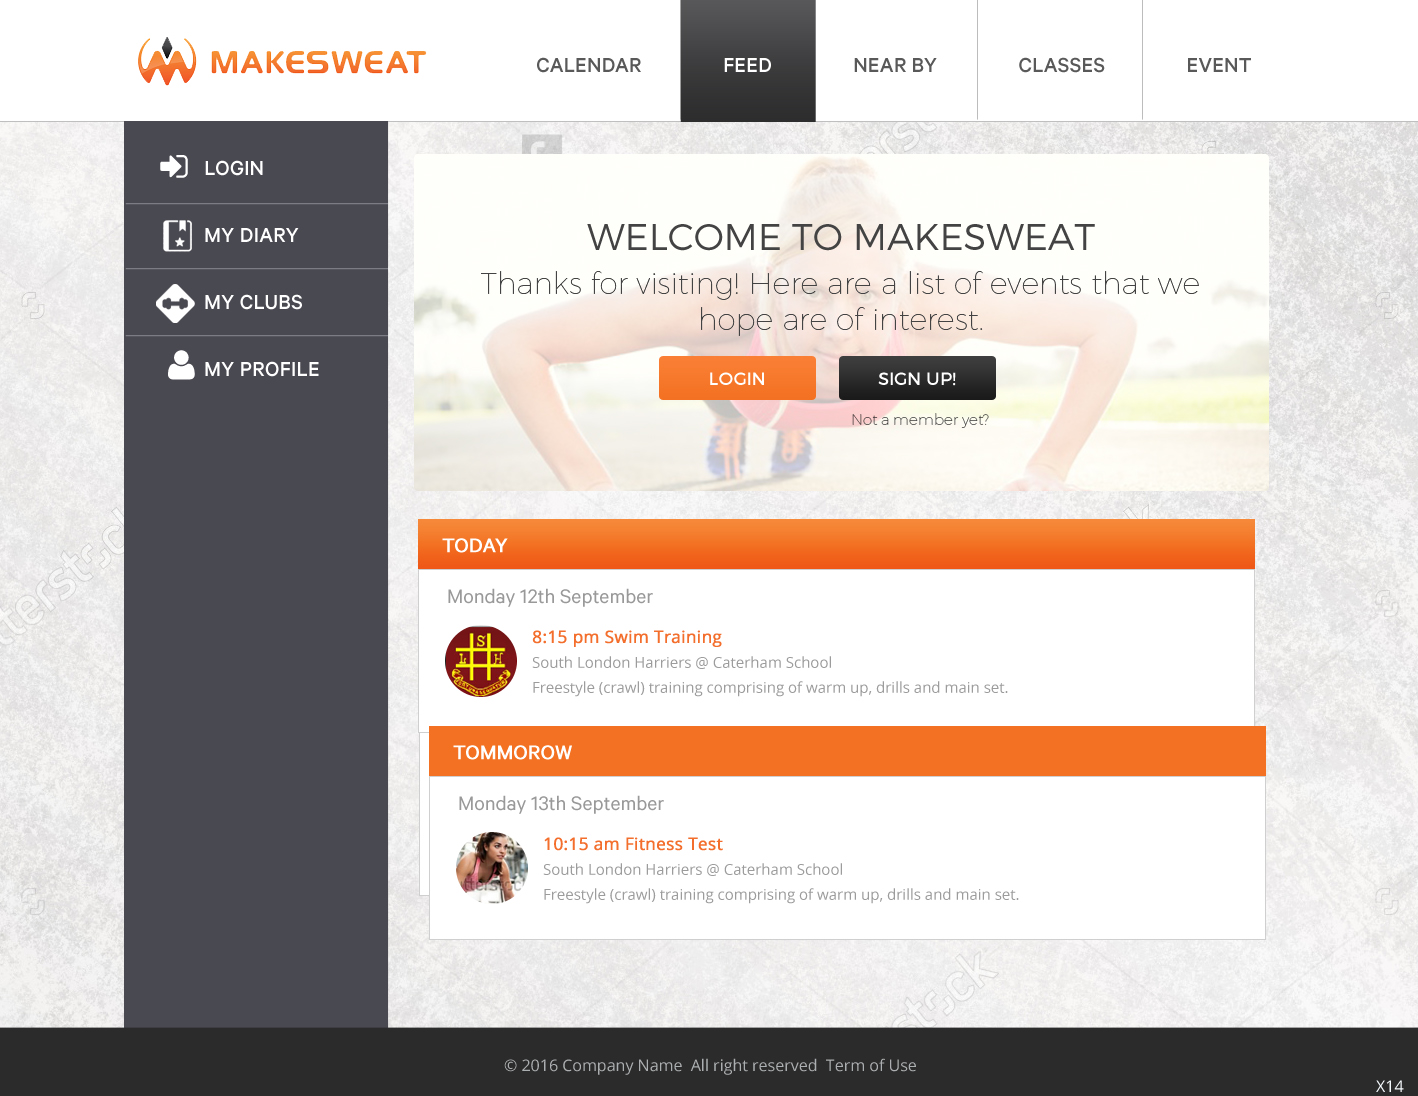 Serious Modern Health And Wellness Web Design For A Company By Pb Design 12047011